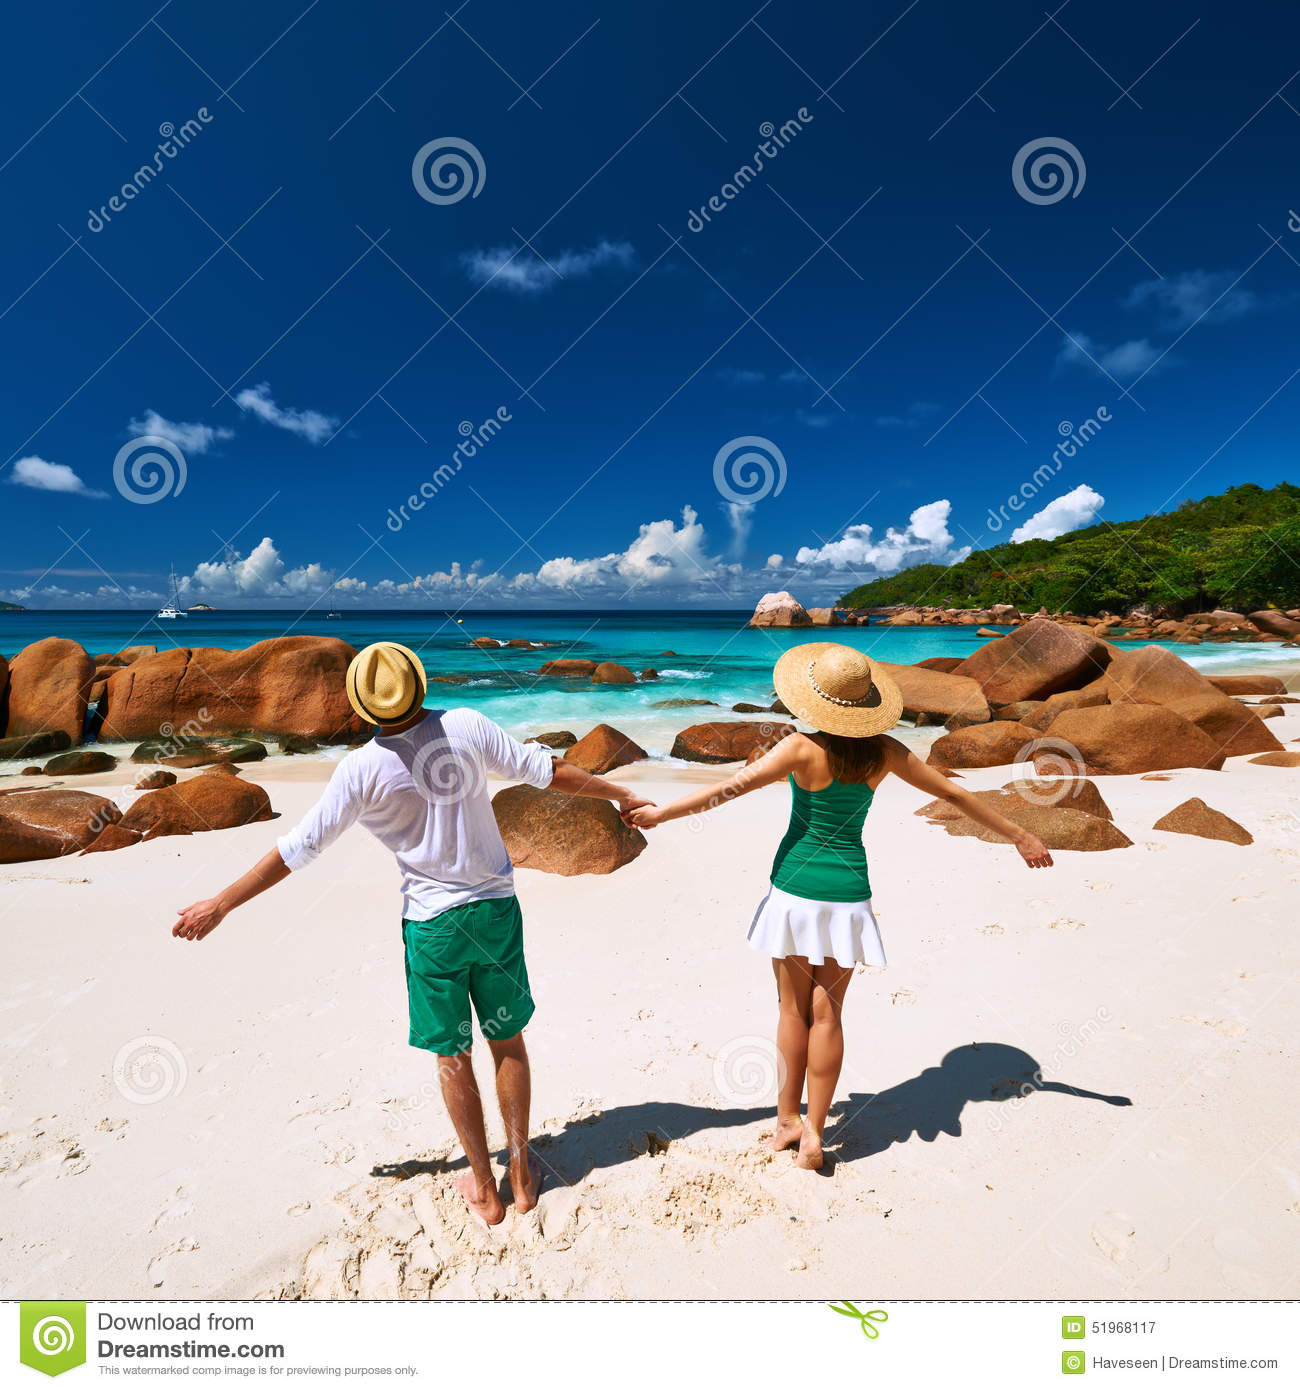 Couple At The Beach Stock Image Image Of Caucasian: Couple In Green Having Fun On A Beach At Seychelles Stock